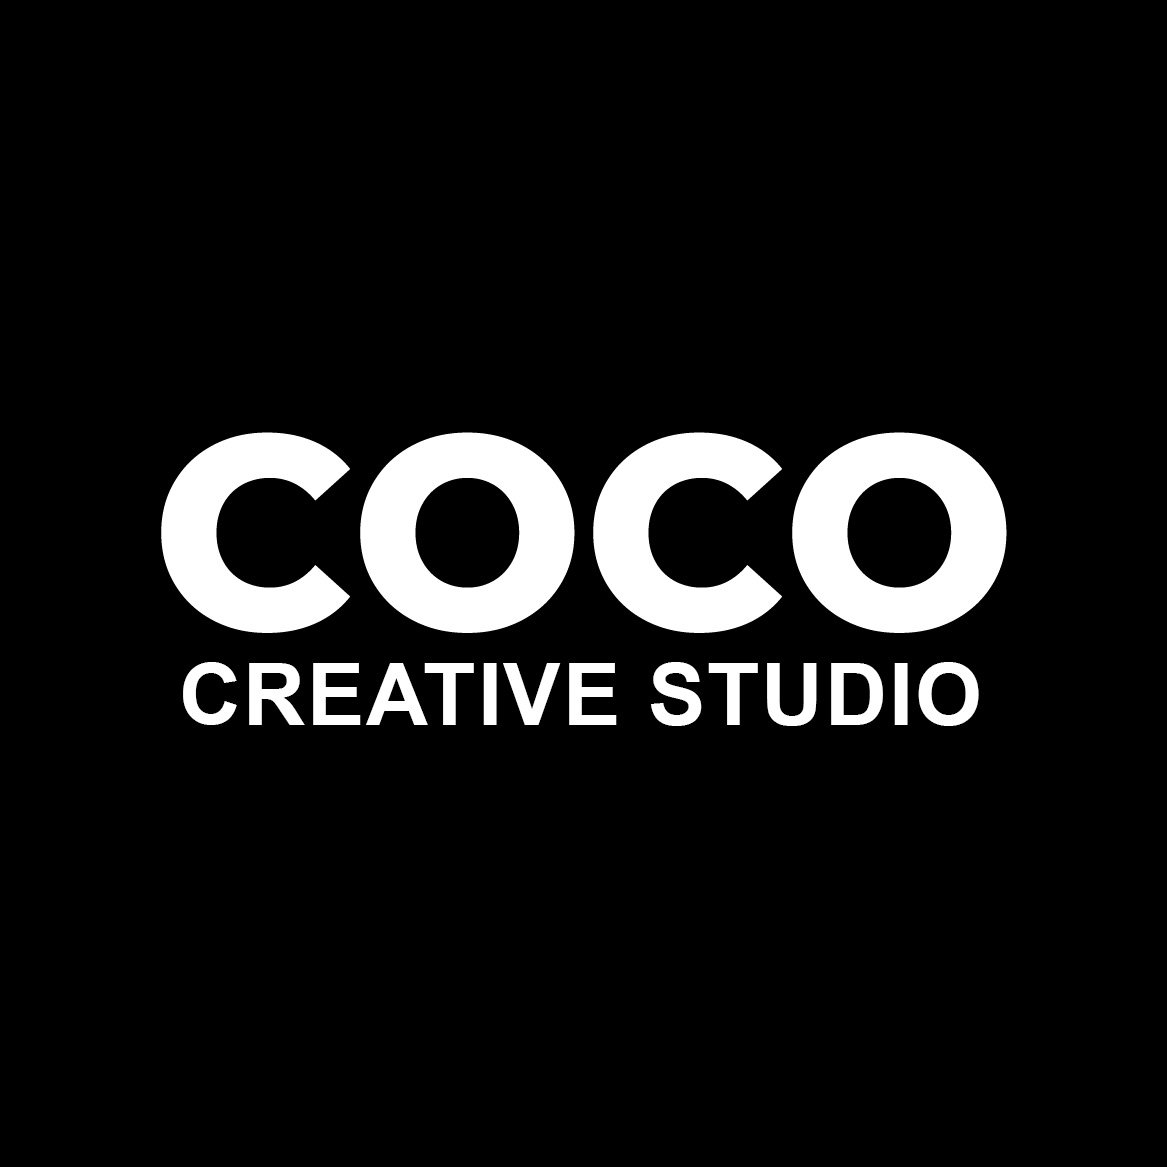 COCO CREATIVE STUDIO SINGAPORE PR COMMUNICATION